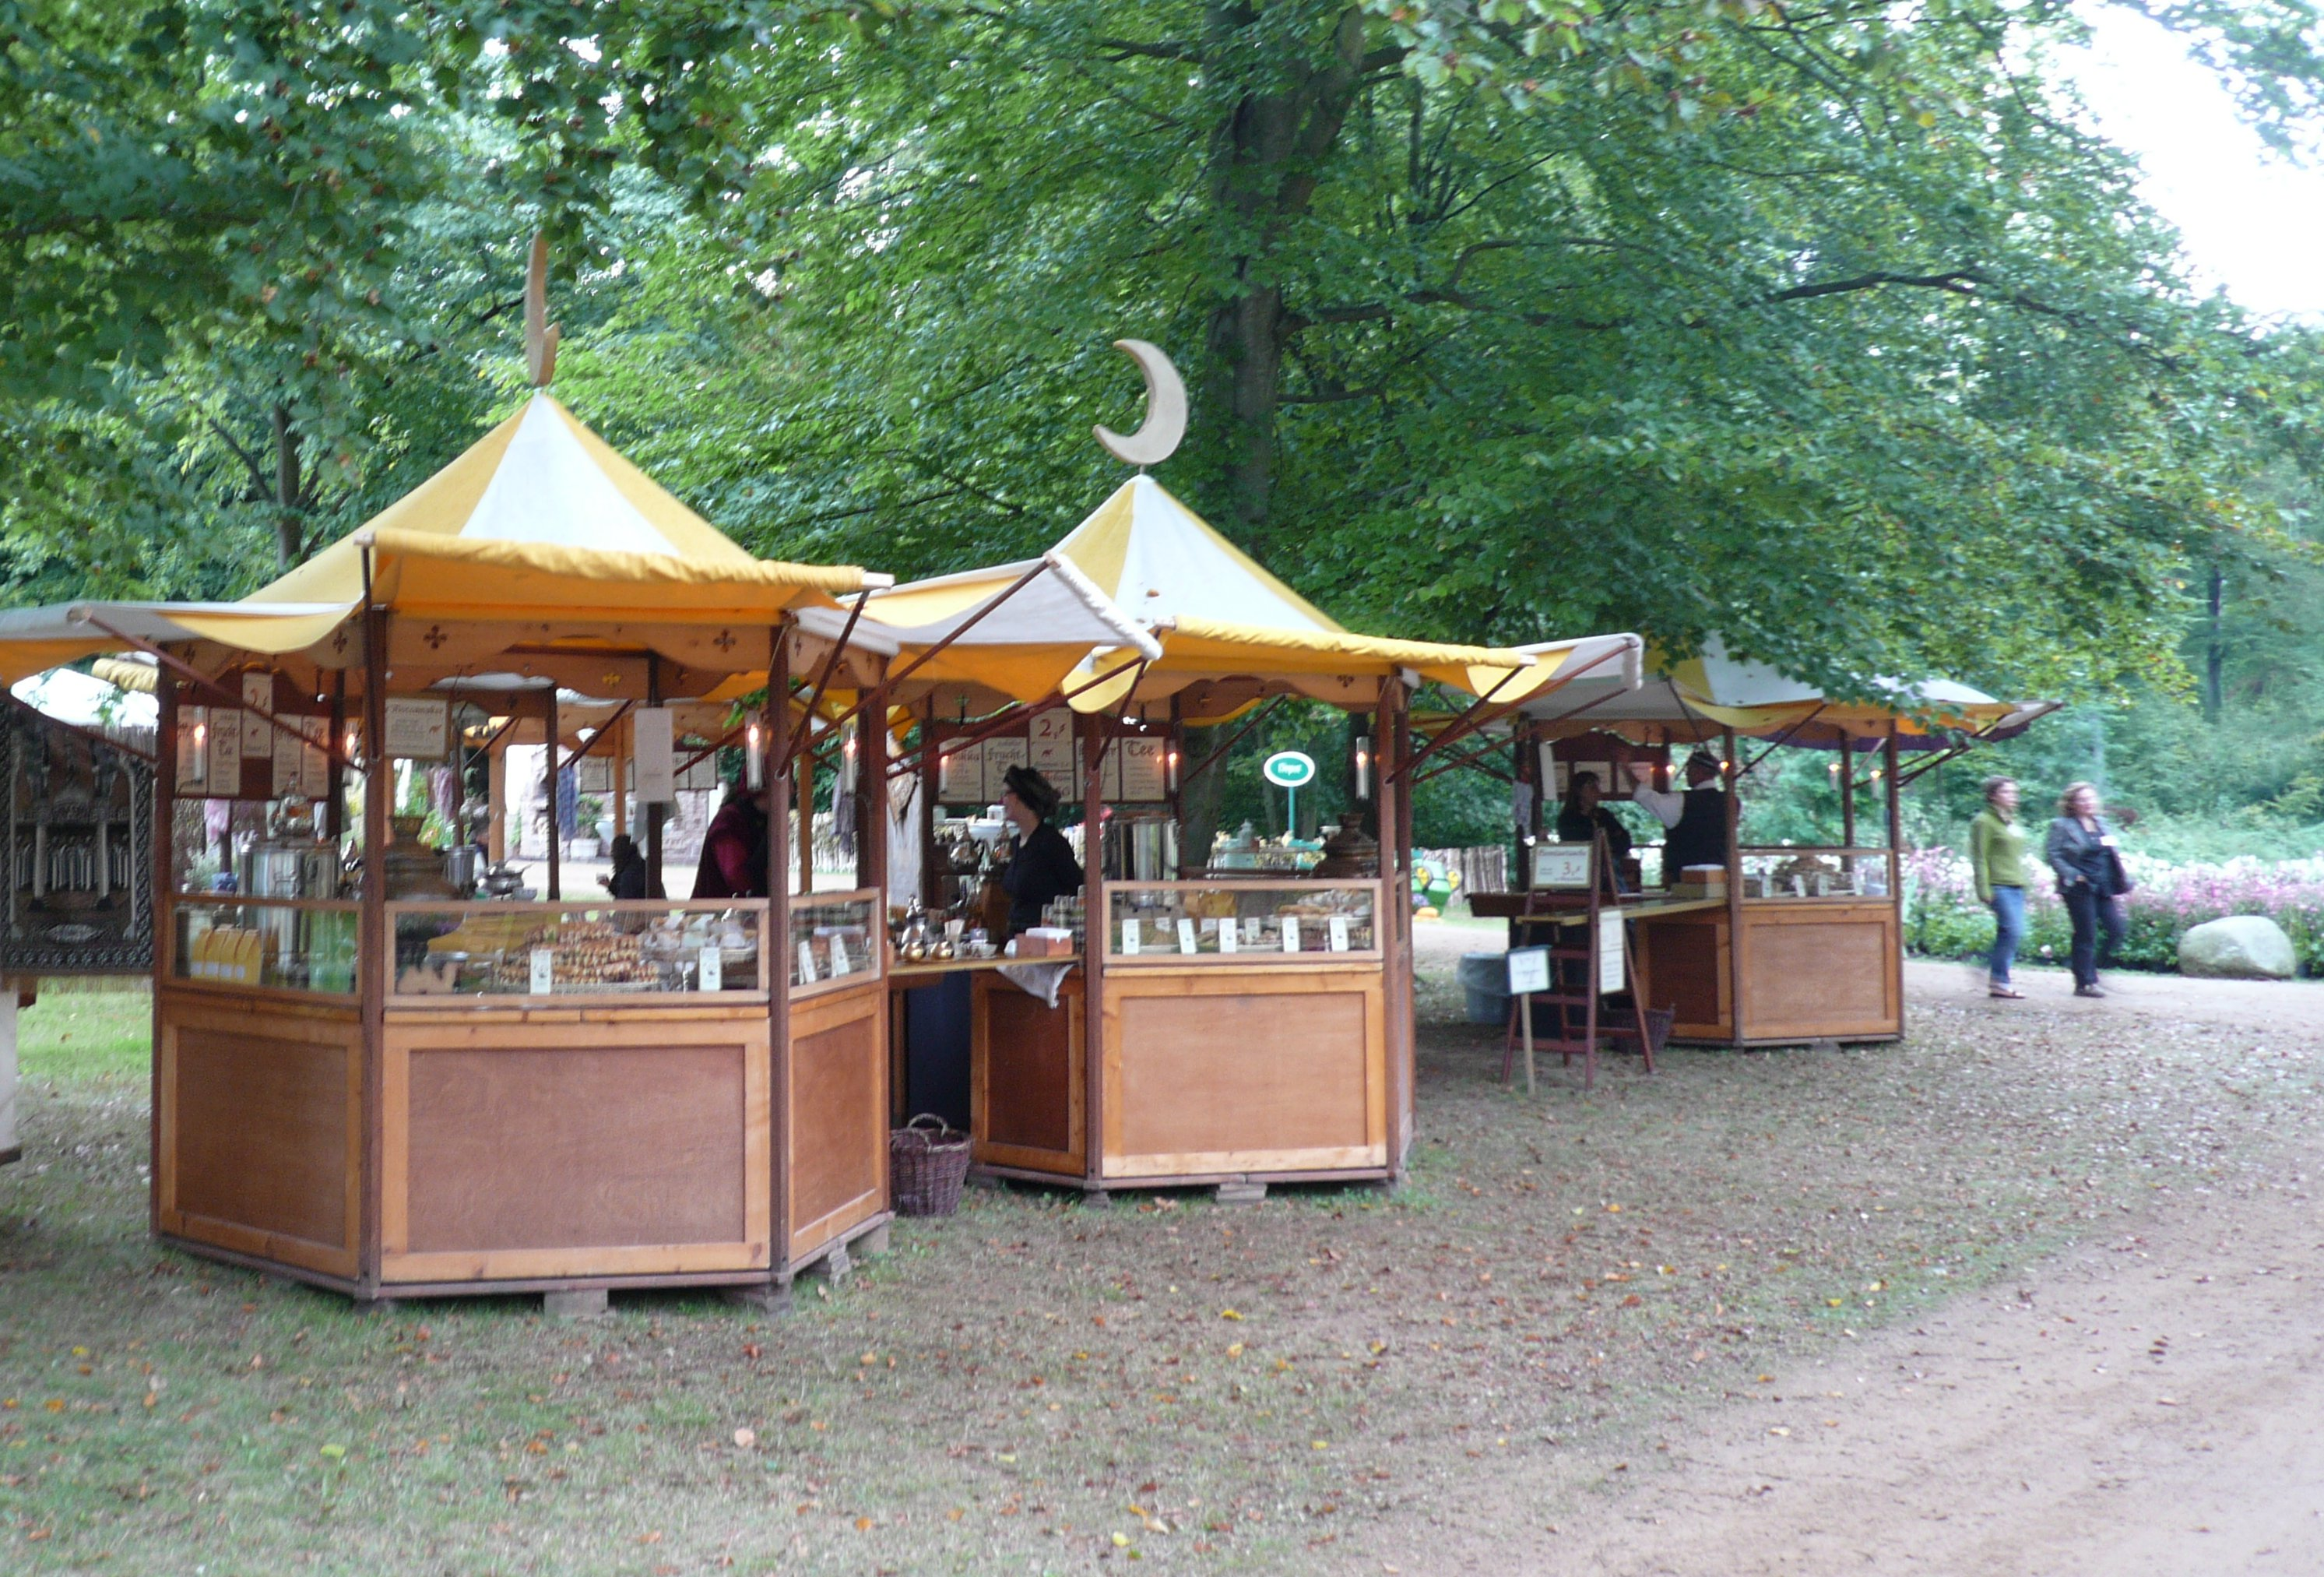 the moccamaker orientalische lebensart das f rstliche gartenfest auf schloss wolfsgarten. Black Bedroom Furniture Sets. Home Design Ideas